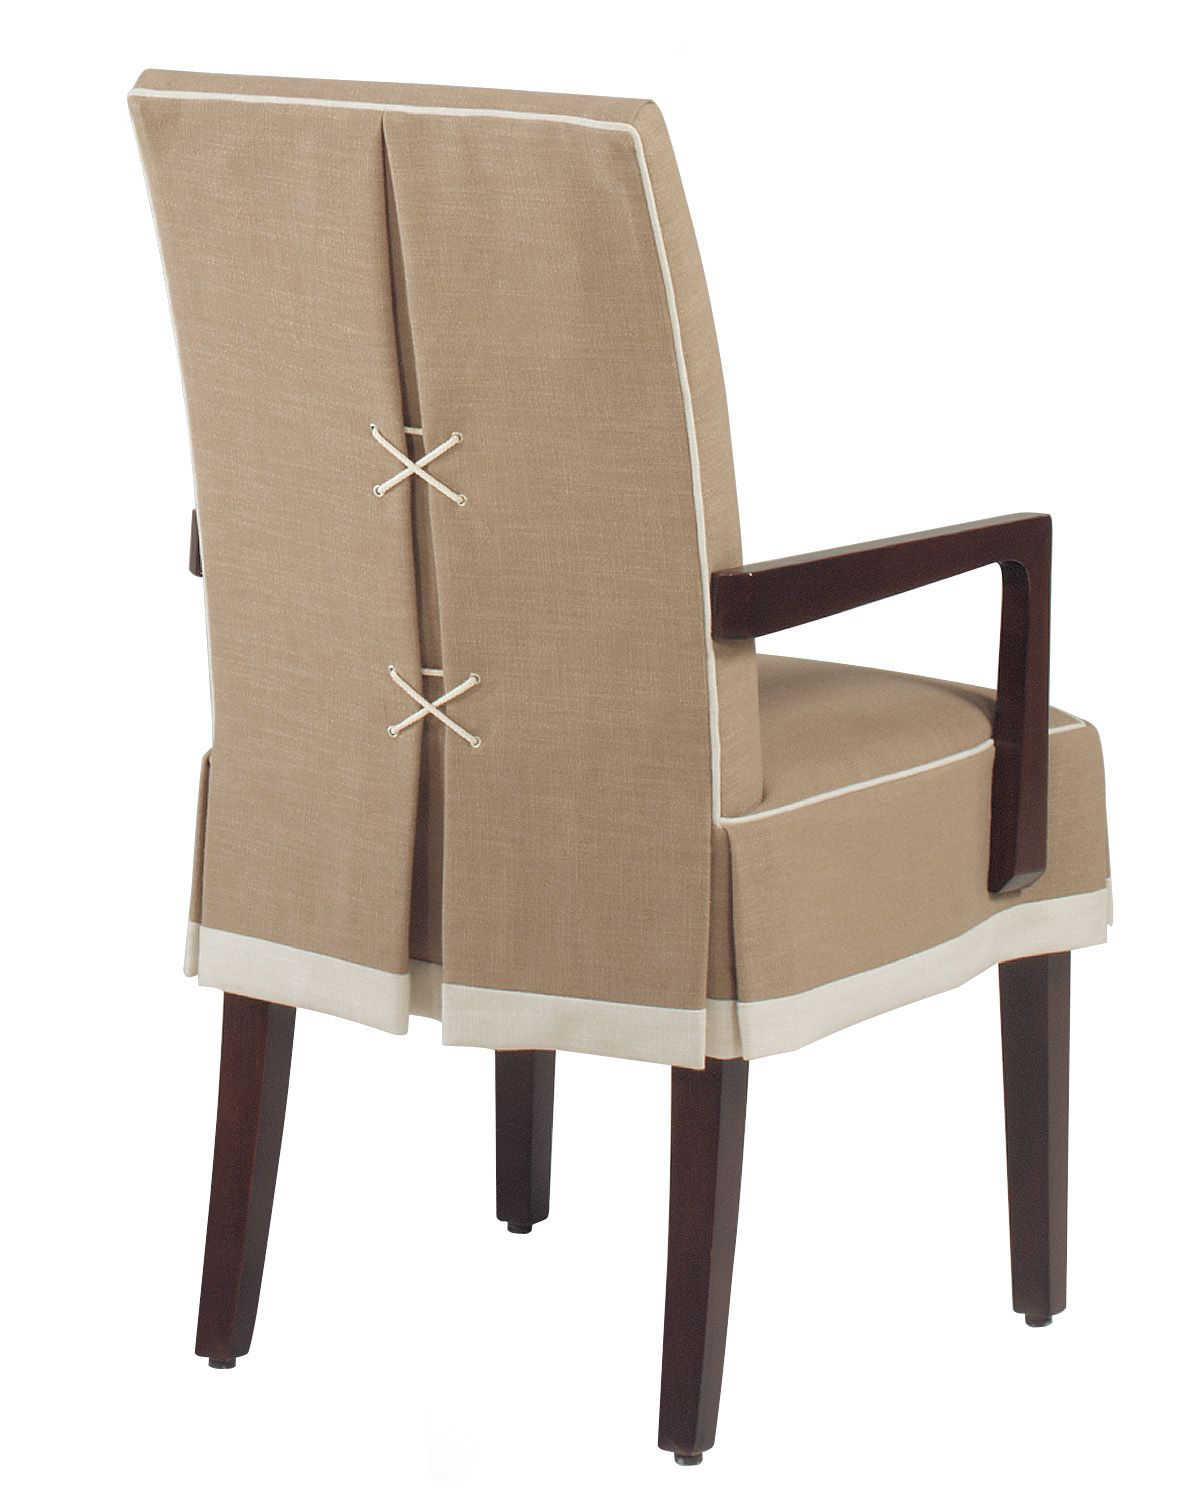 Dining Room Chairs With Arms Covers Dining Room Arm Chairs Dining Room Chair Slipcovers Dining Room Chair Covers